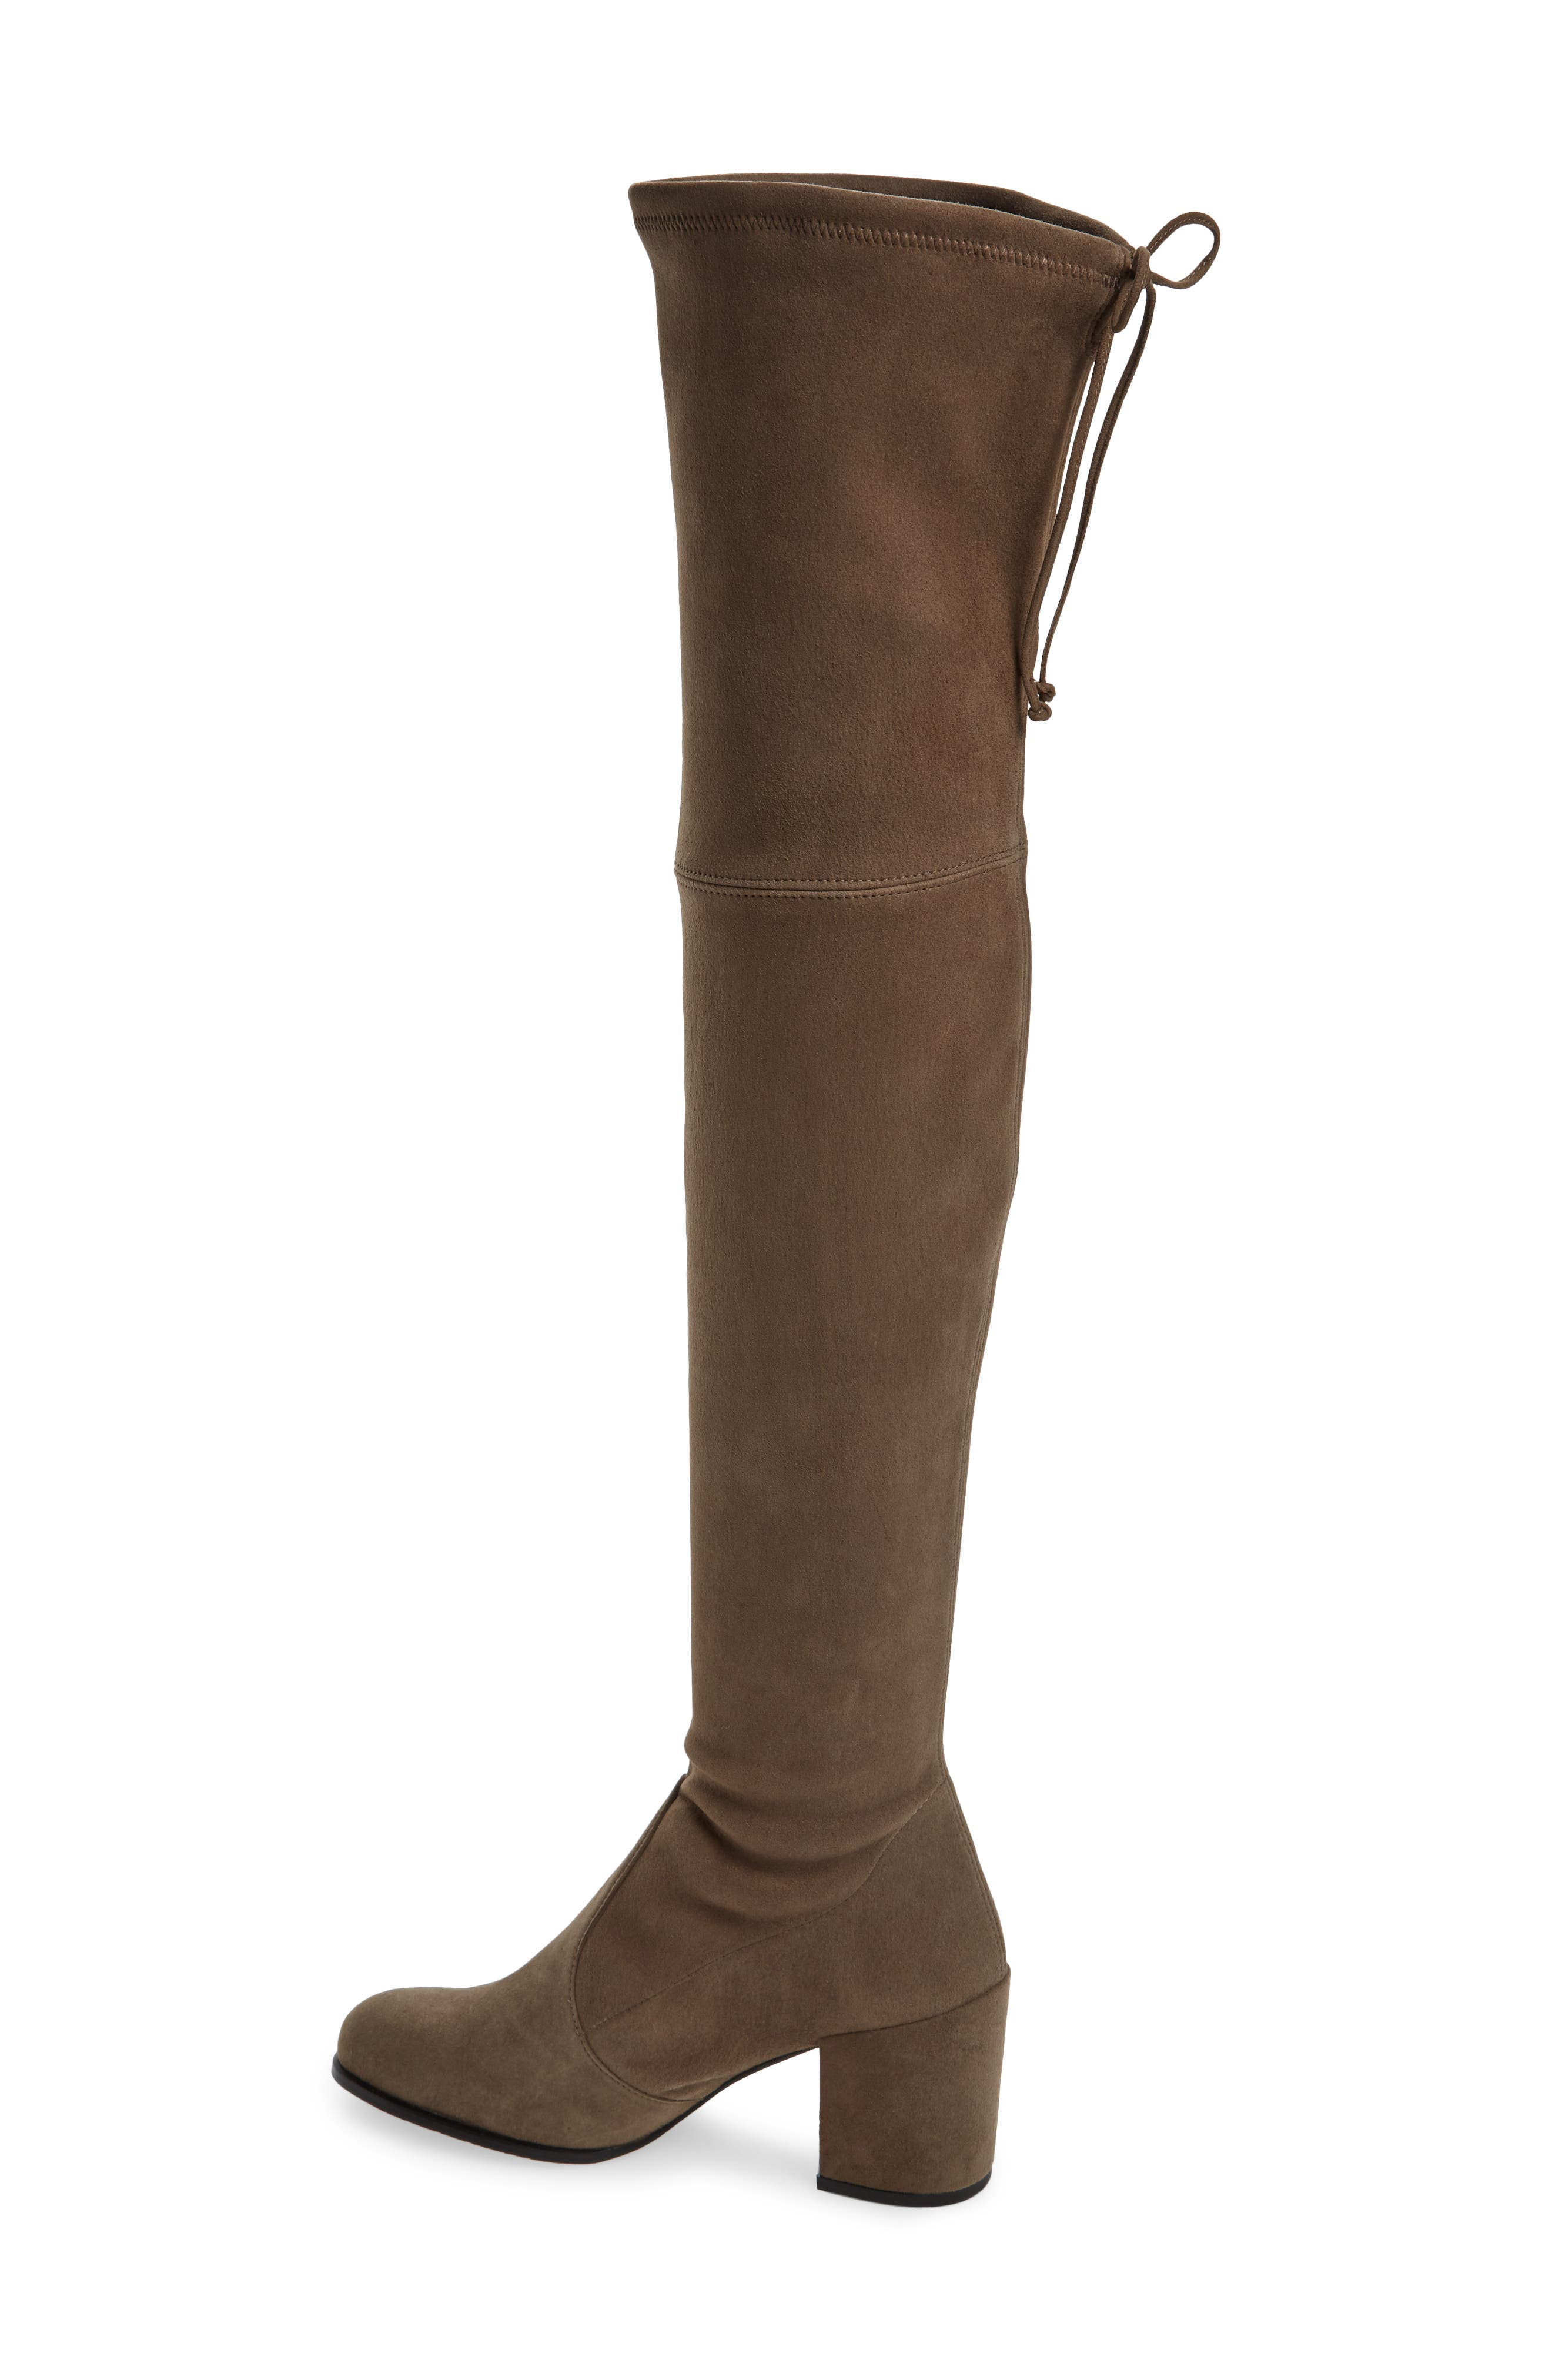 Tieland Over the Knee Boot,                             Alternate thumbnail 2, color,                             Praline Suede